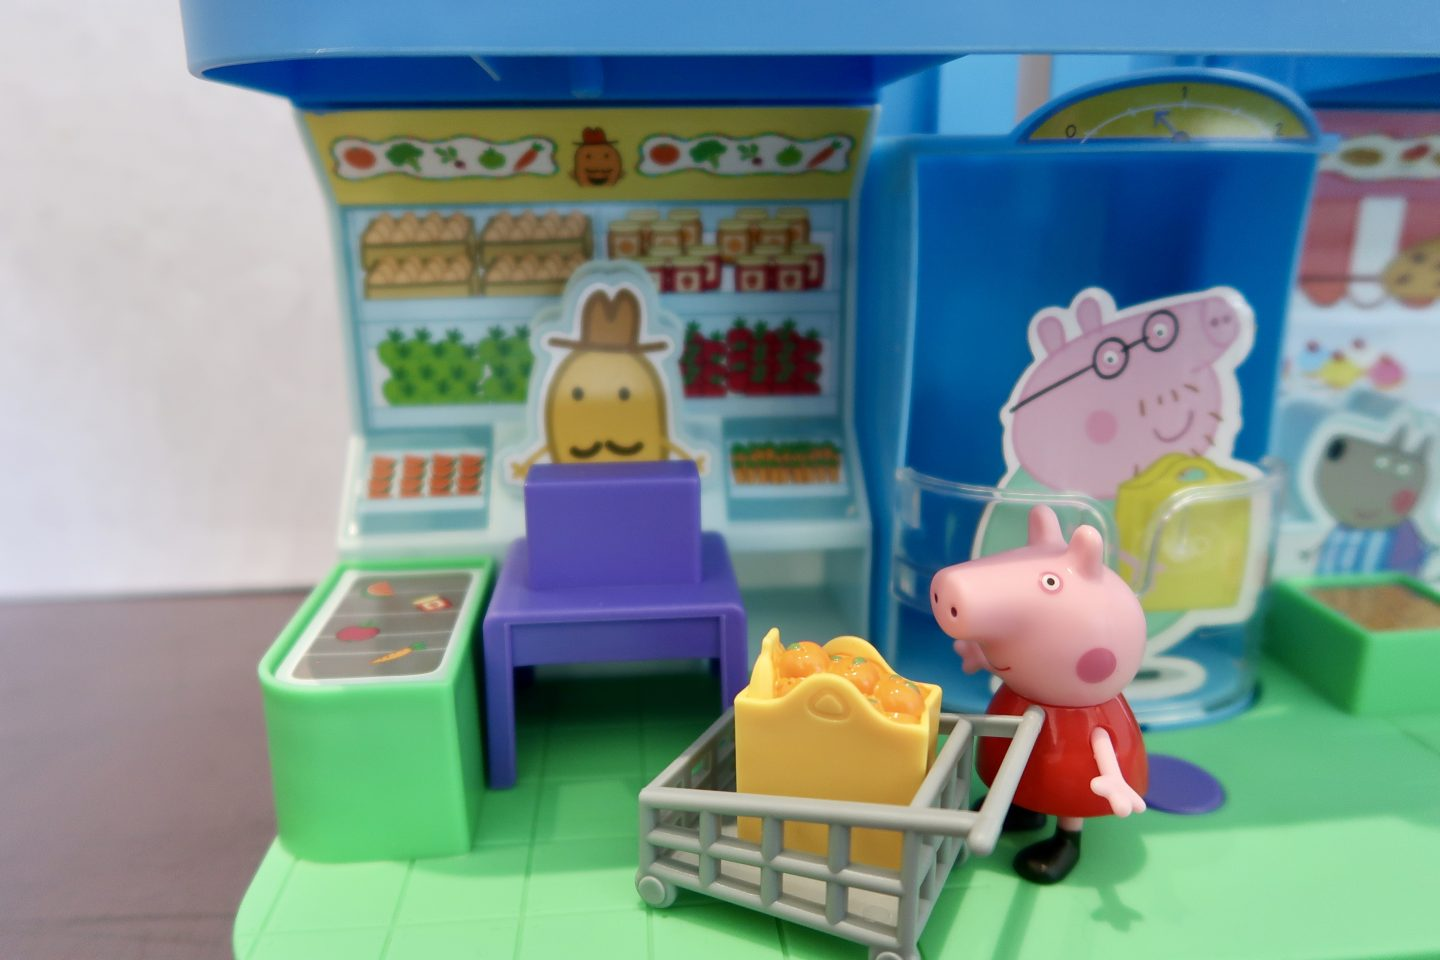 A Peppa Pig figure with a shopping trolley in a toy shop